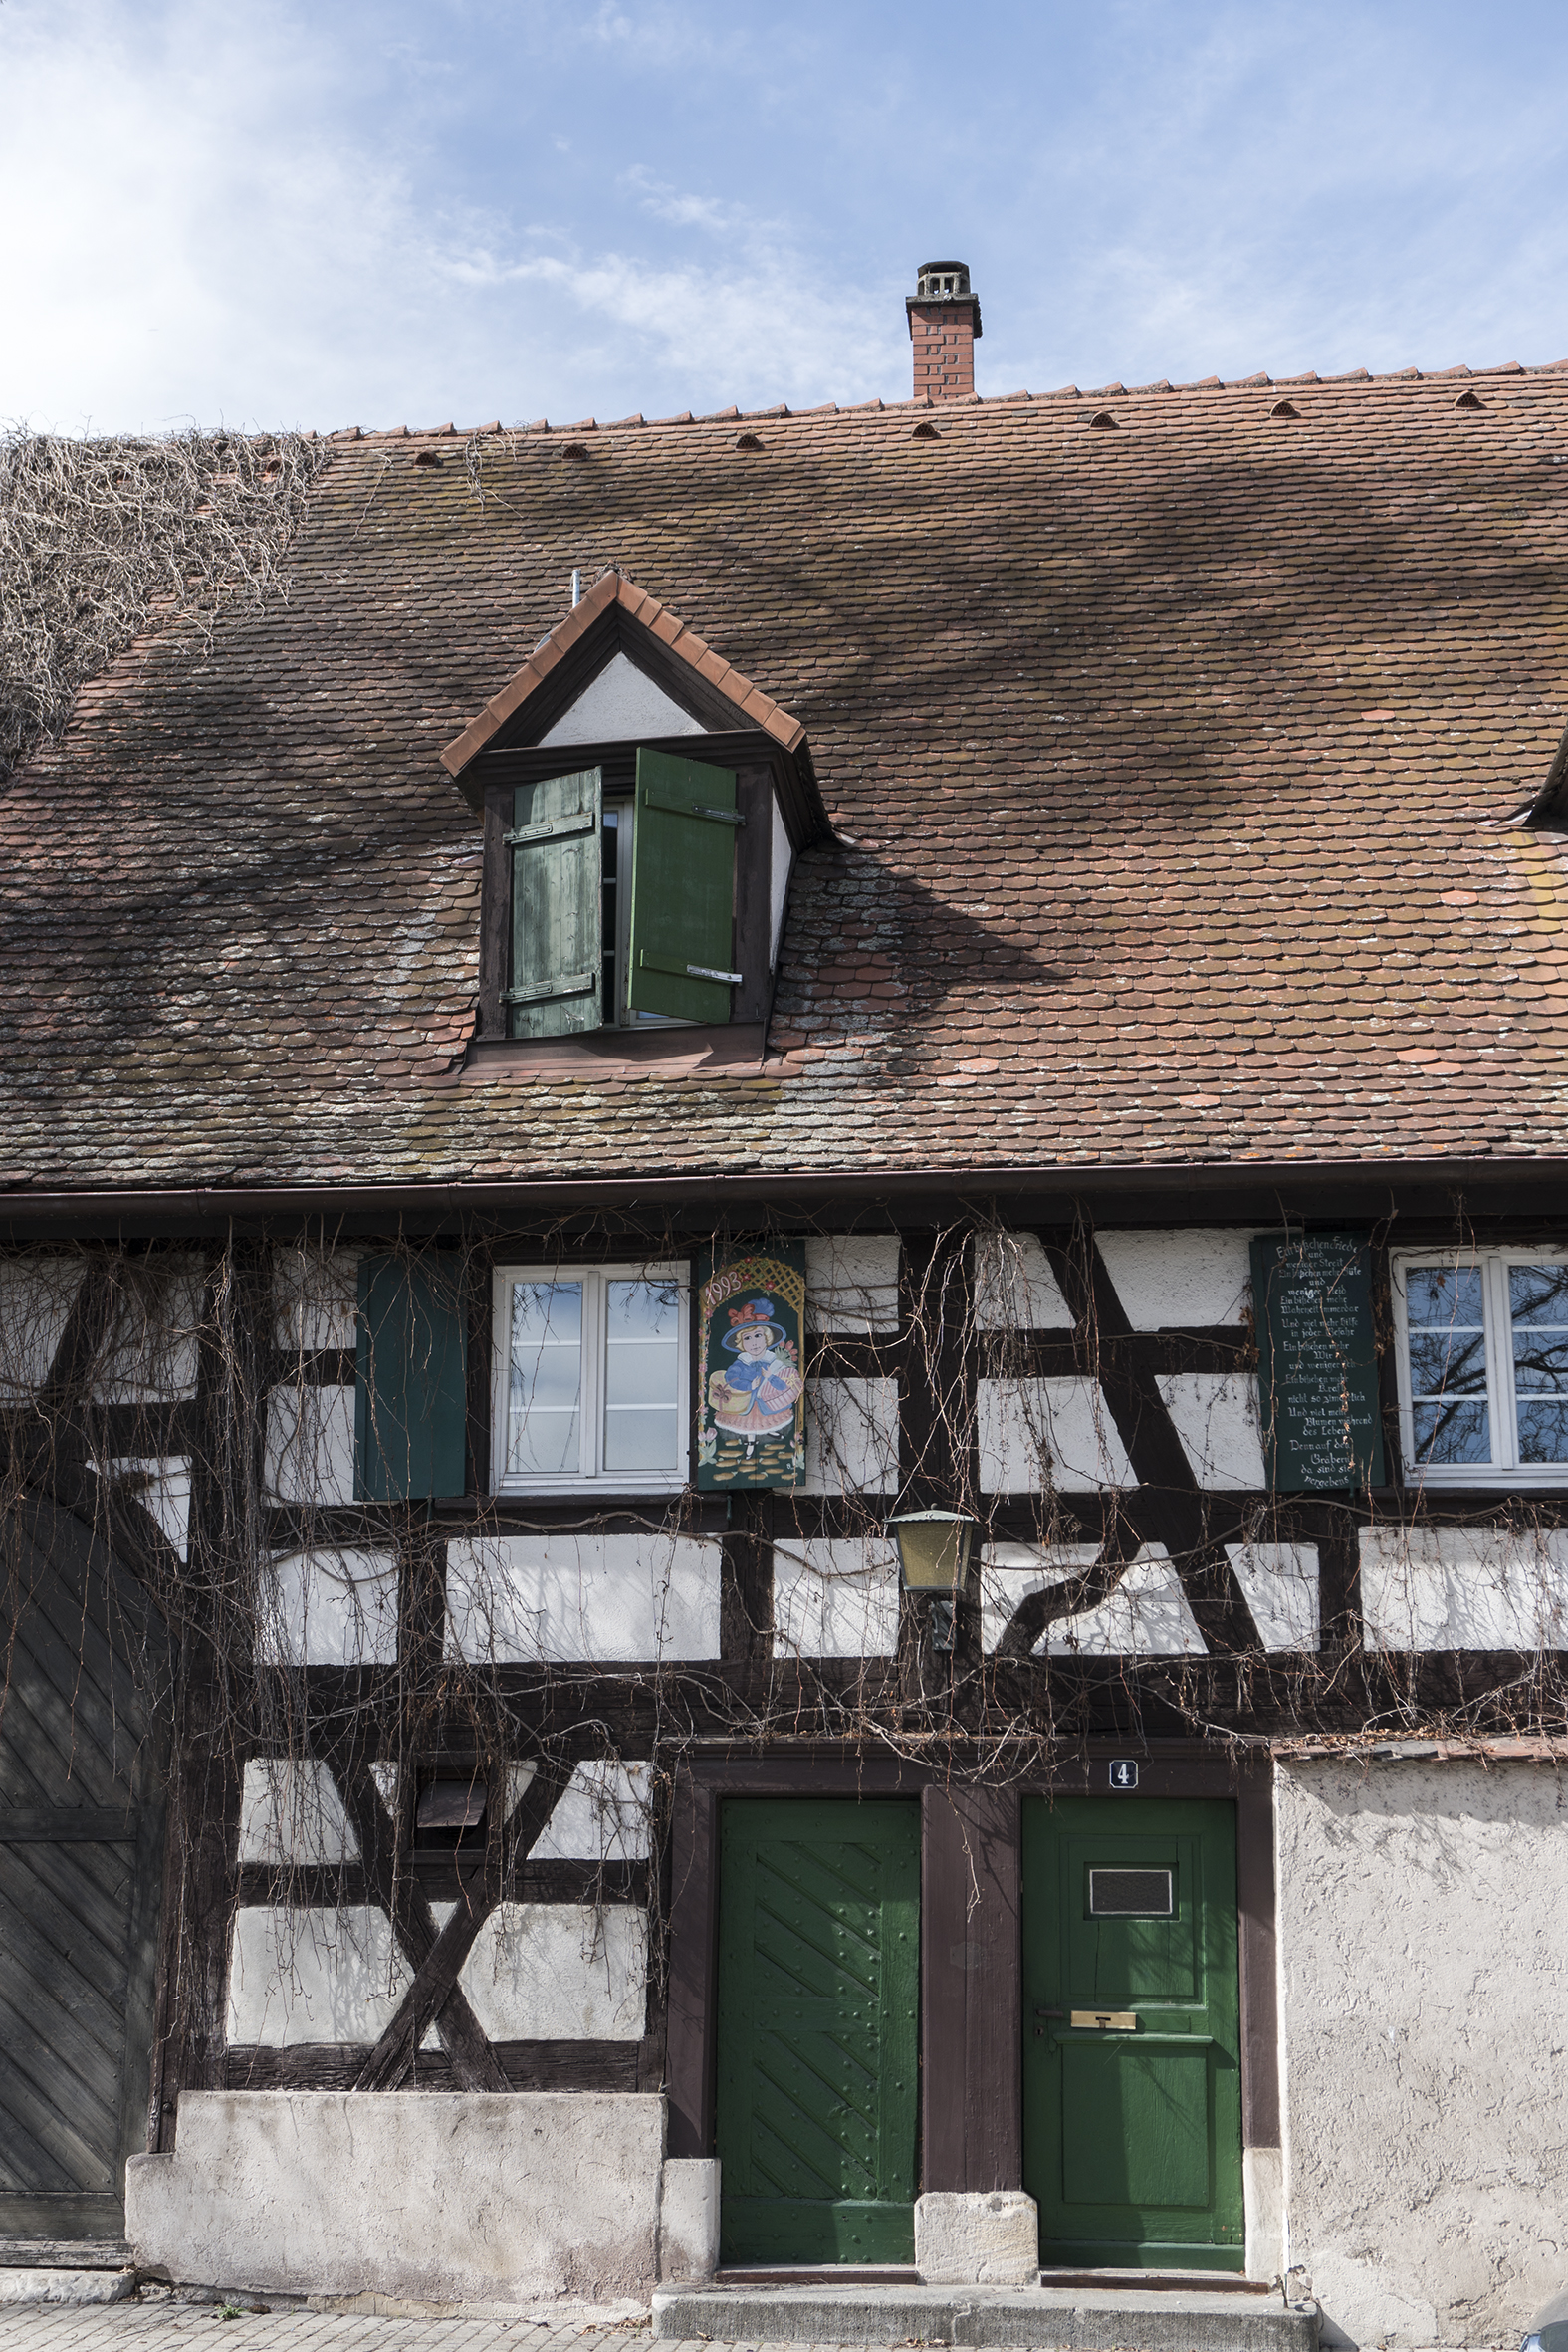 Mediaeval half-timbered facades...